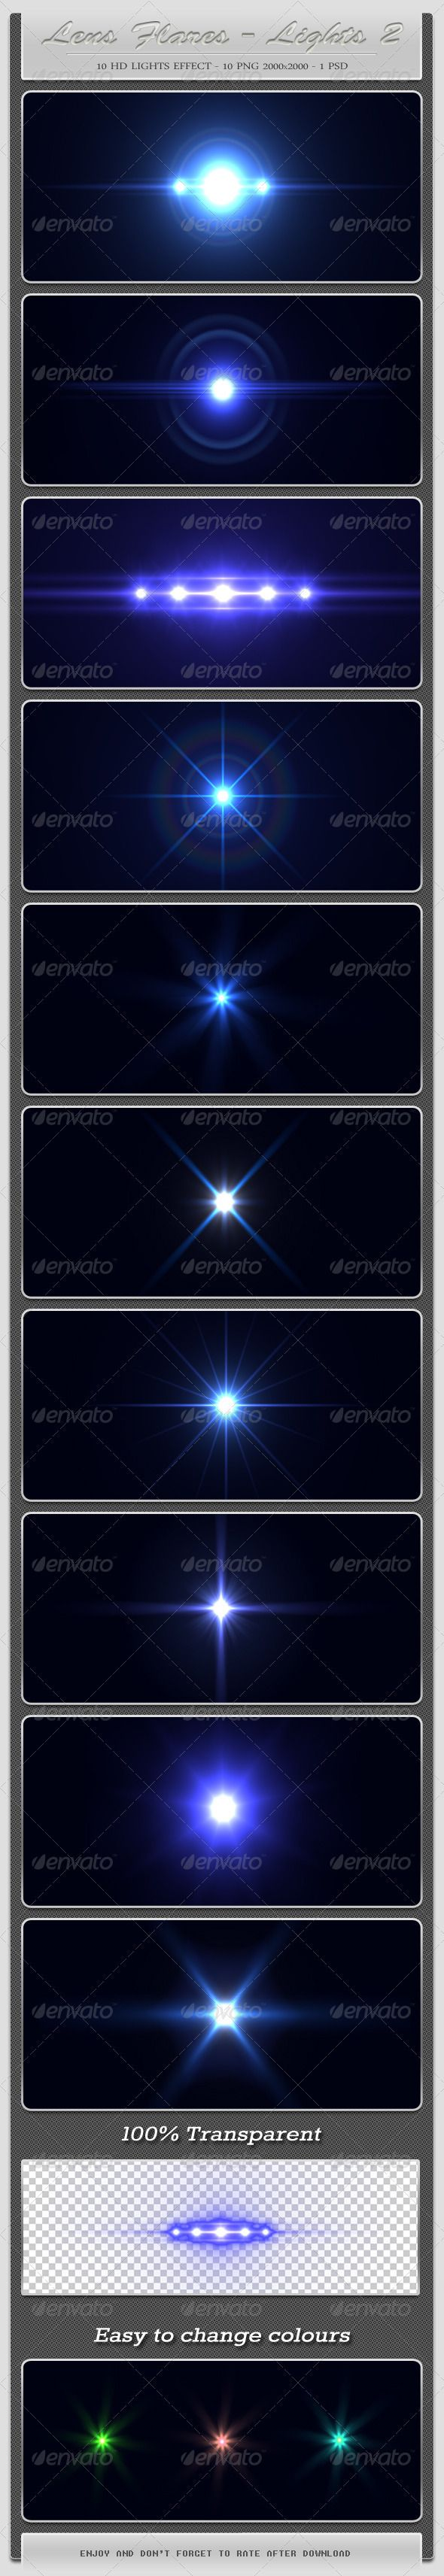 10 HD Lens Flares - Light Effects 2  #GraphicRiver        10 HD Lens Flares – Light Effects – Second Part includes   - 10 PNG files sized at 2000×2000 pixels ( 100% transparent)  - PSD file   Can be added to: text, images, logos, etc.                                                                                                                                                                                                                            Created: 4April12 GraphicsFilesIncluded…